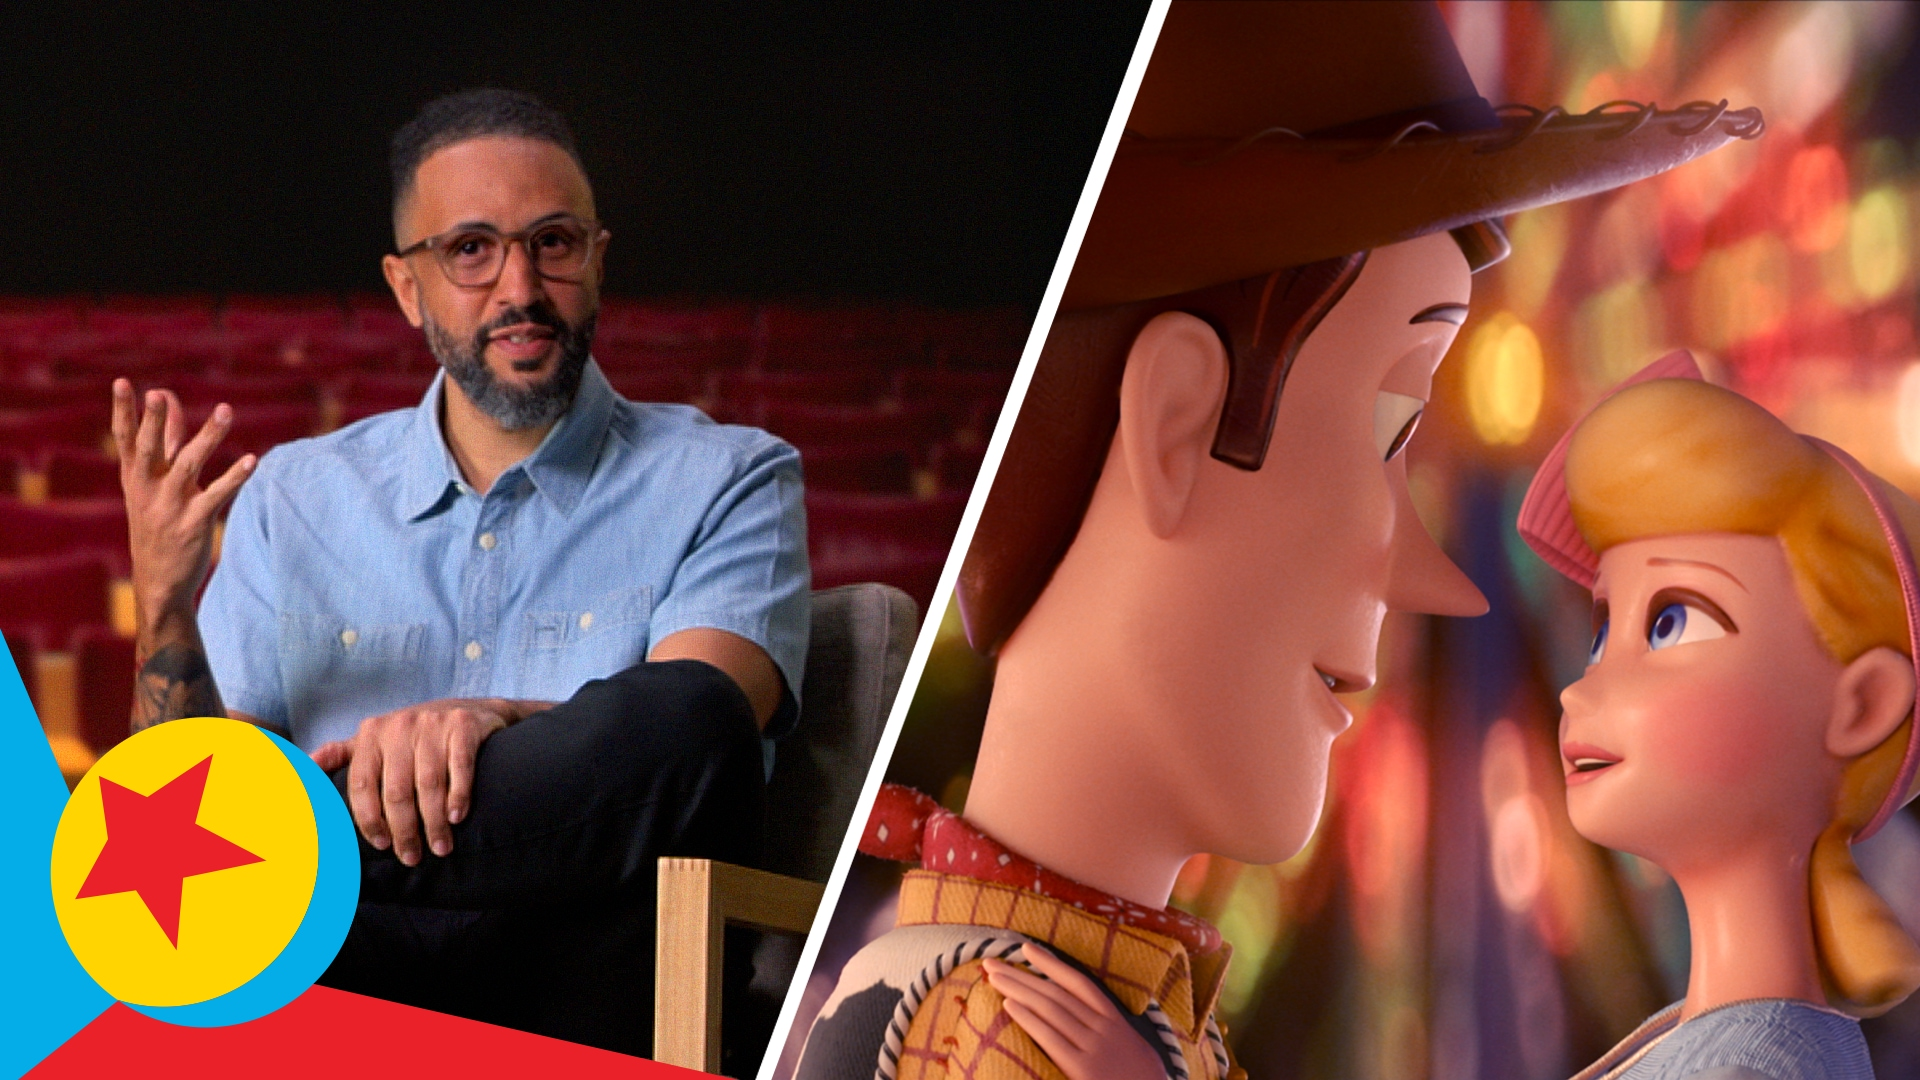 Why Pixar Movies Make You Emotional | Inside Pixar: Foundations | Pixar